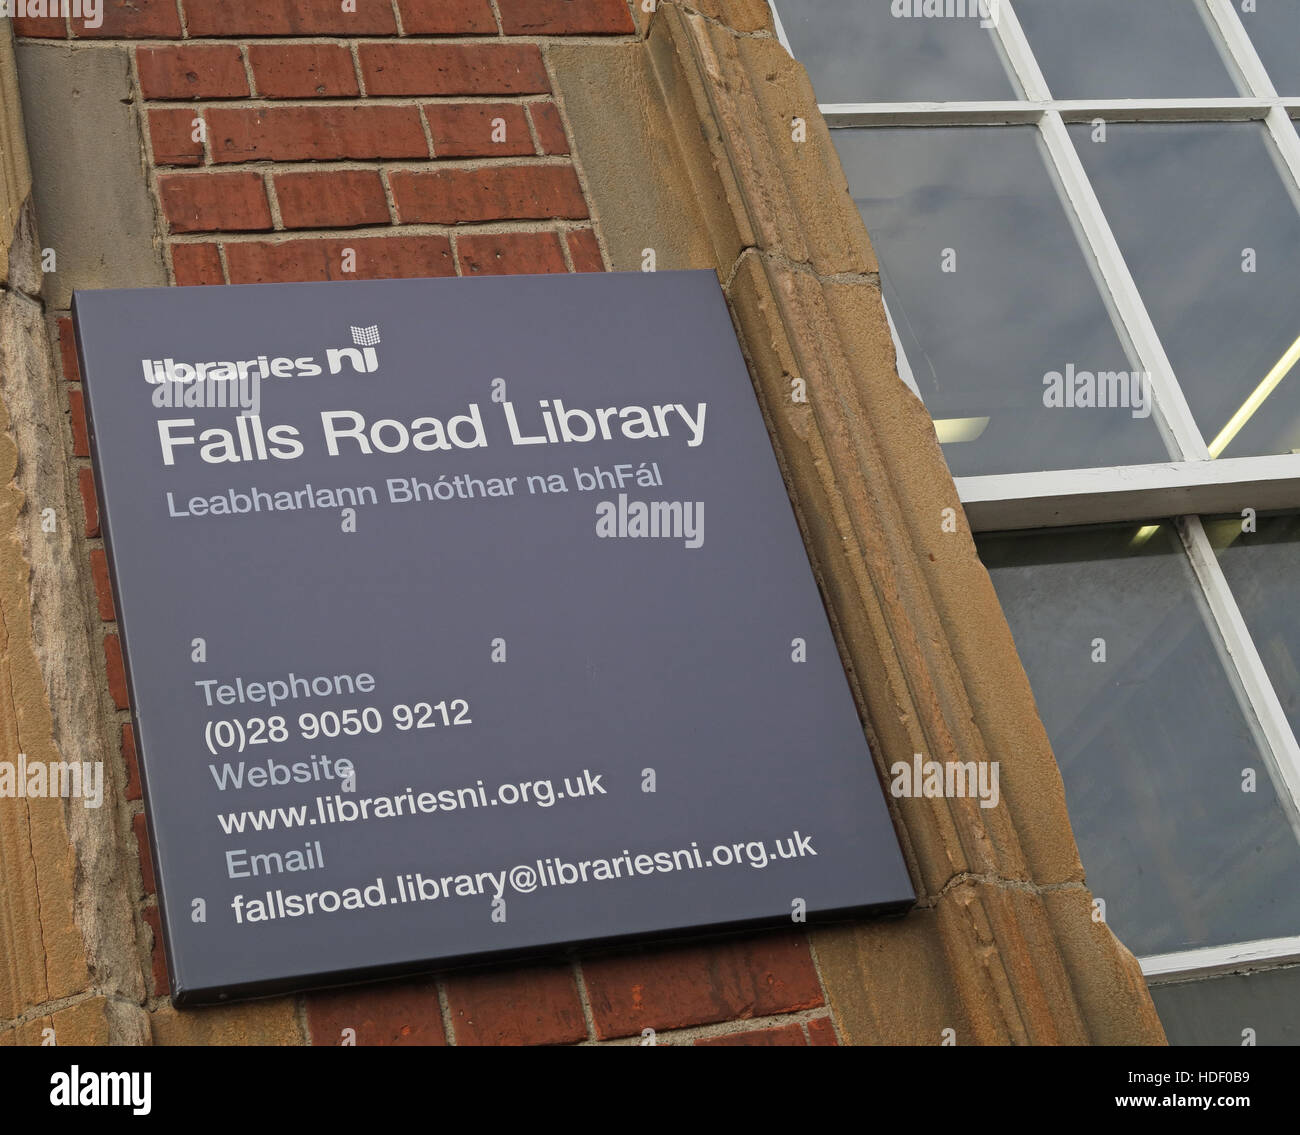 Belfast Falls Rd Library - Stock Image